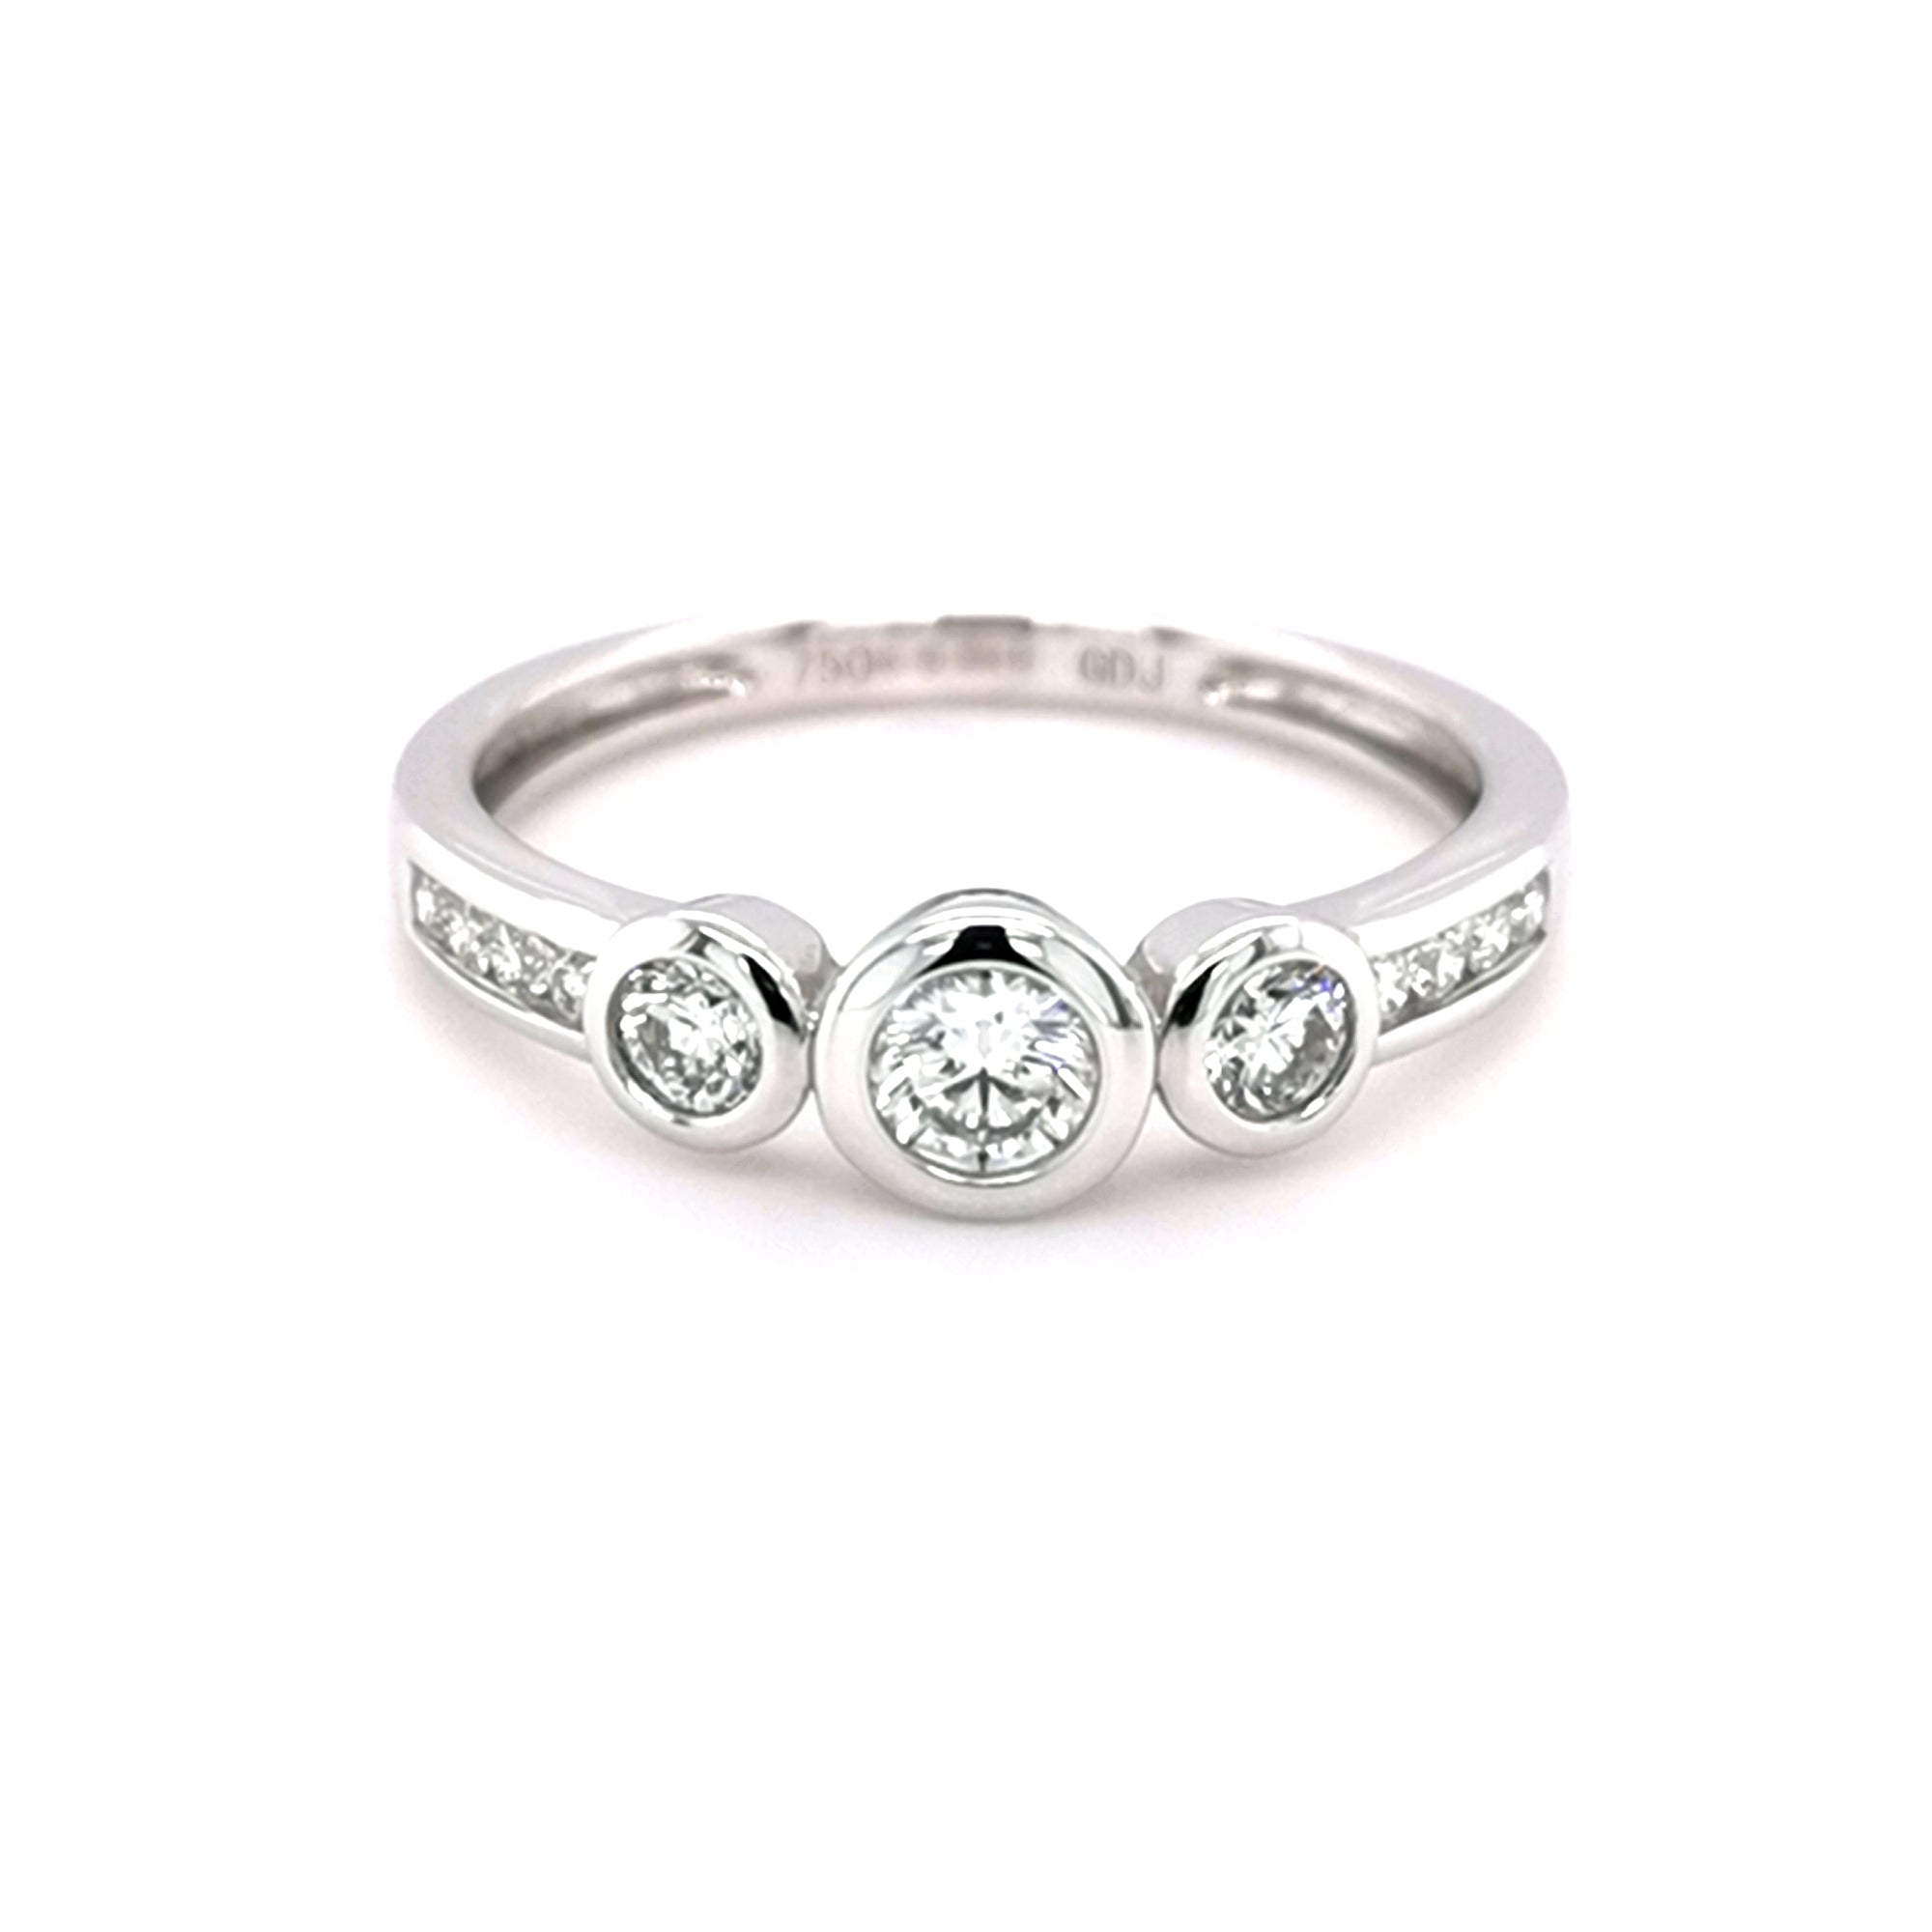 18ct White Gold 3 Stone Ring - Sonny's